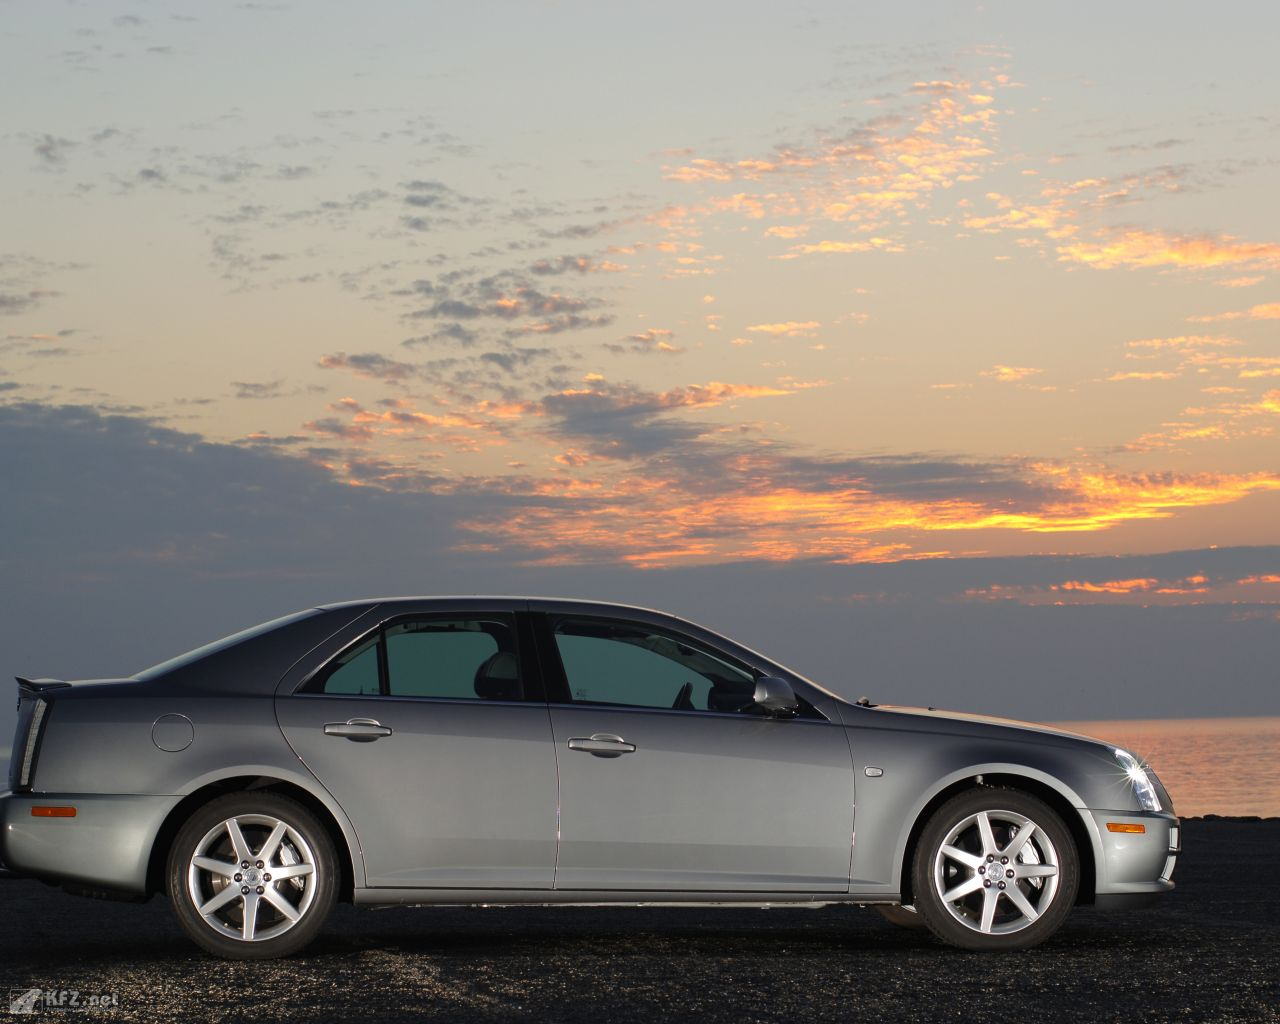 cadillac-sts-1280x1024-4